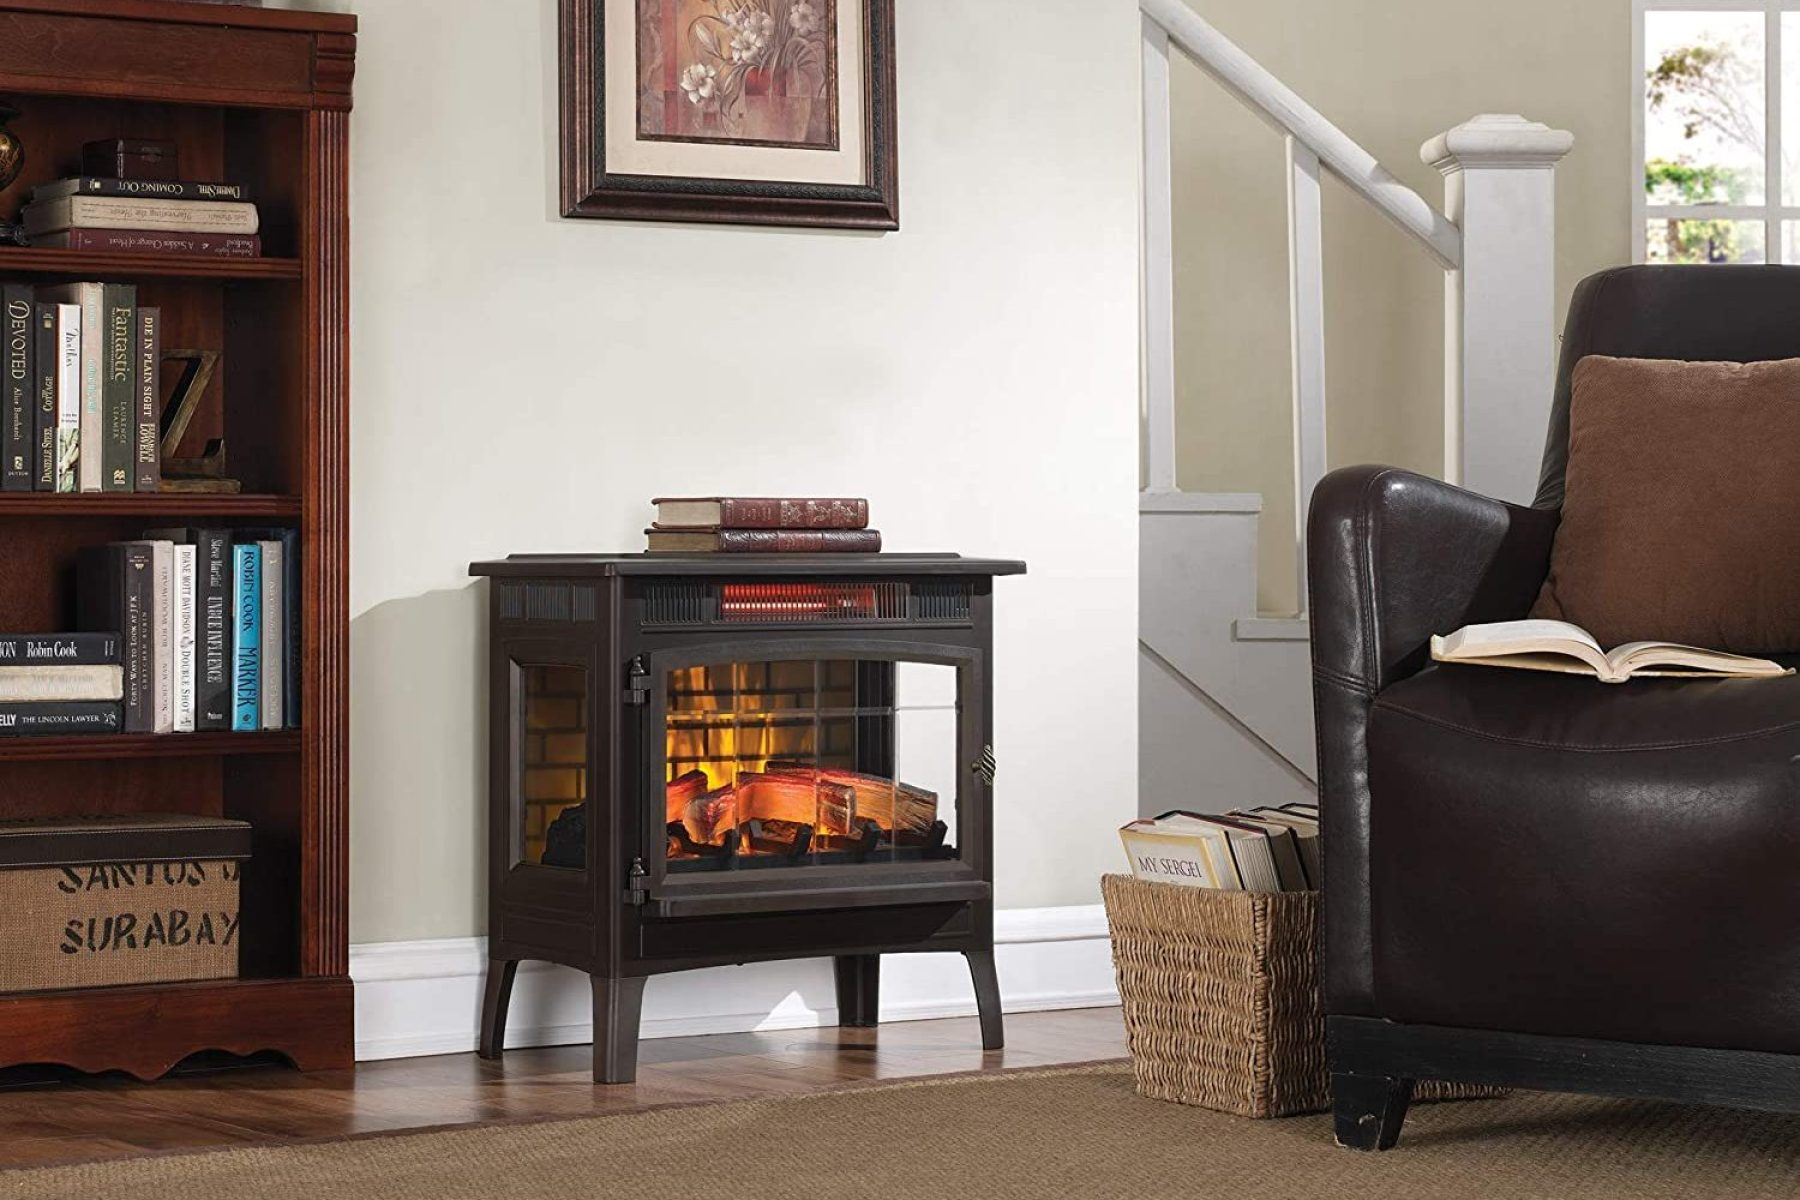 Best Electric Fireplace Heaters 2020 Freestanding Built In Insert Rolling Stone